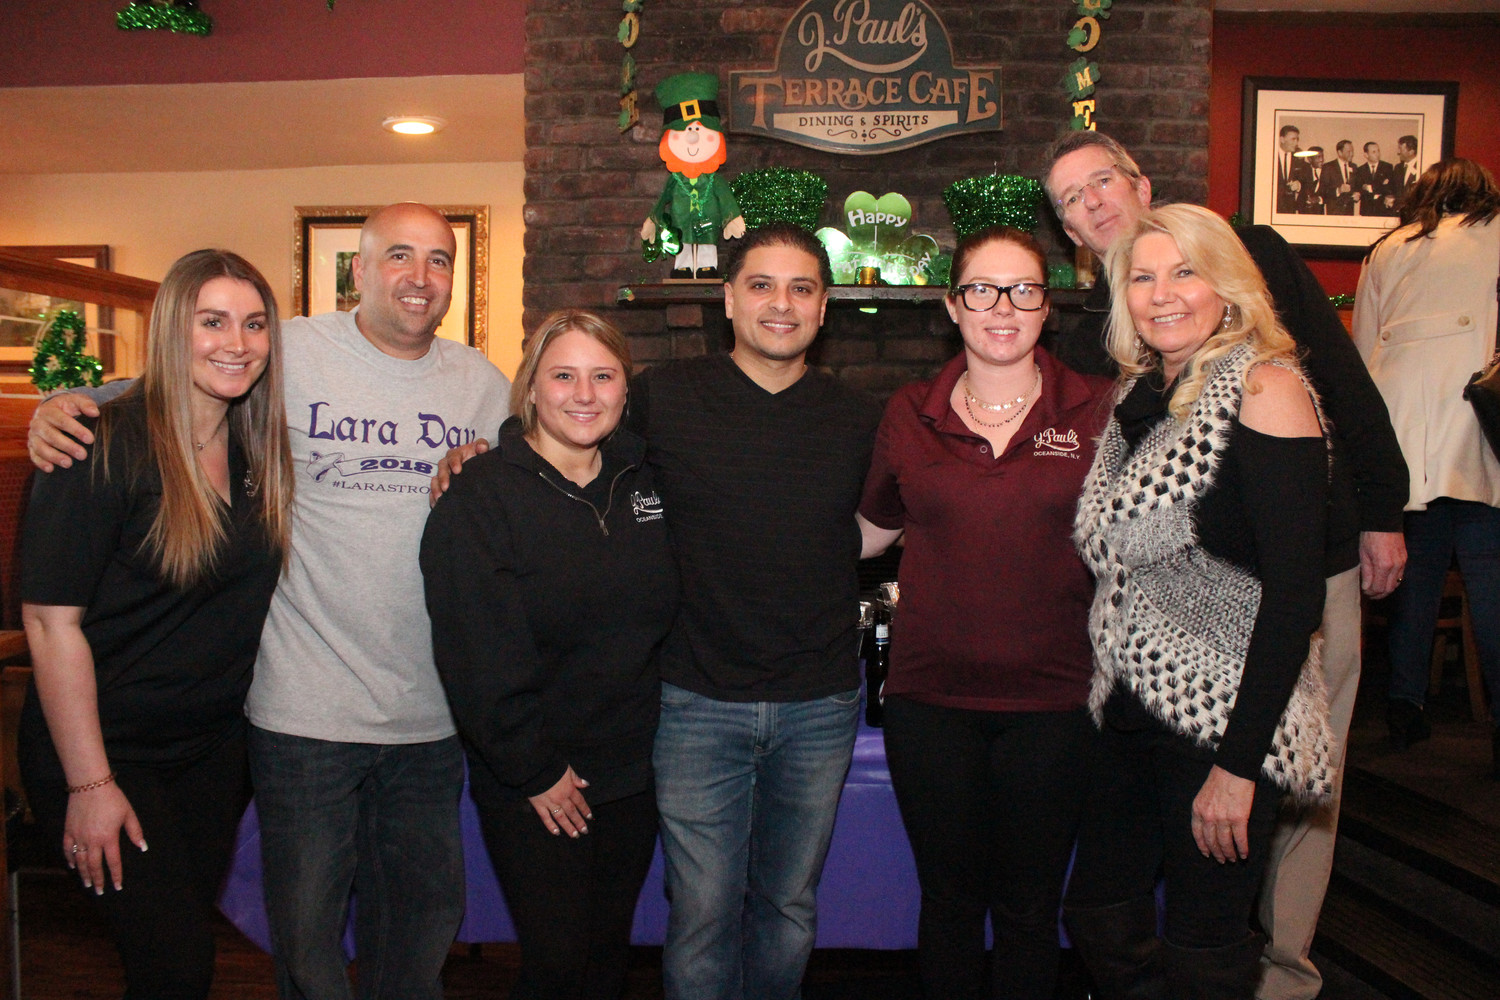 J. Paul's co-owner Joe Bonin, second from left, with staff Larissa Ango, left, Courtney Collins, Juan Roca, Laura Raimondo, Billy Doyle and Deb Collier during the restaurant's Lara Day fundraiser on March 10.